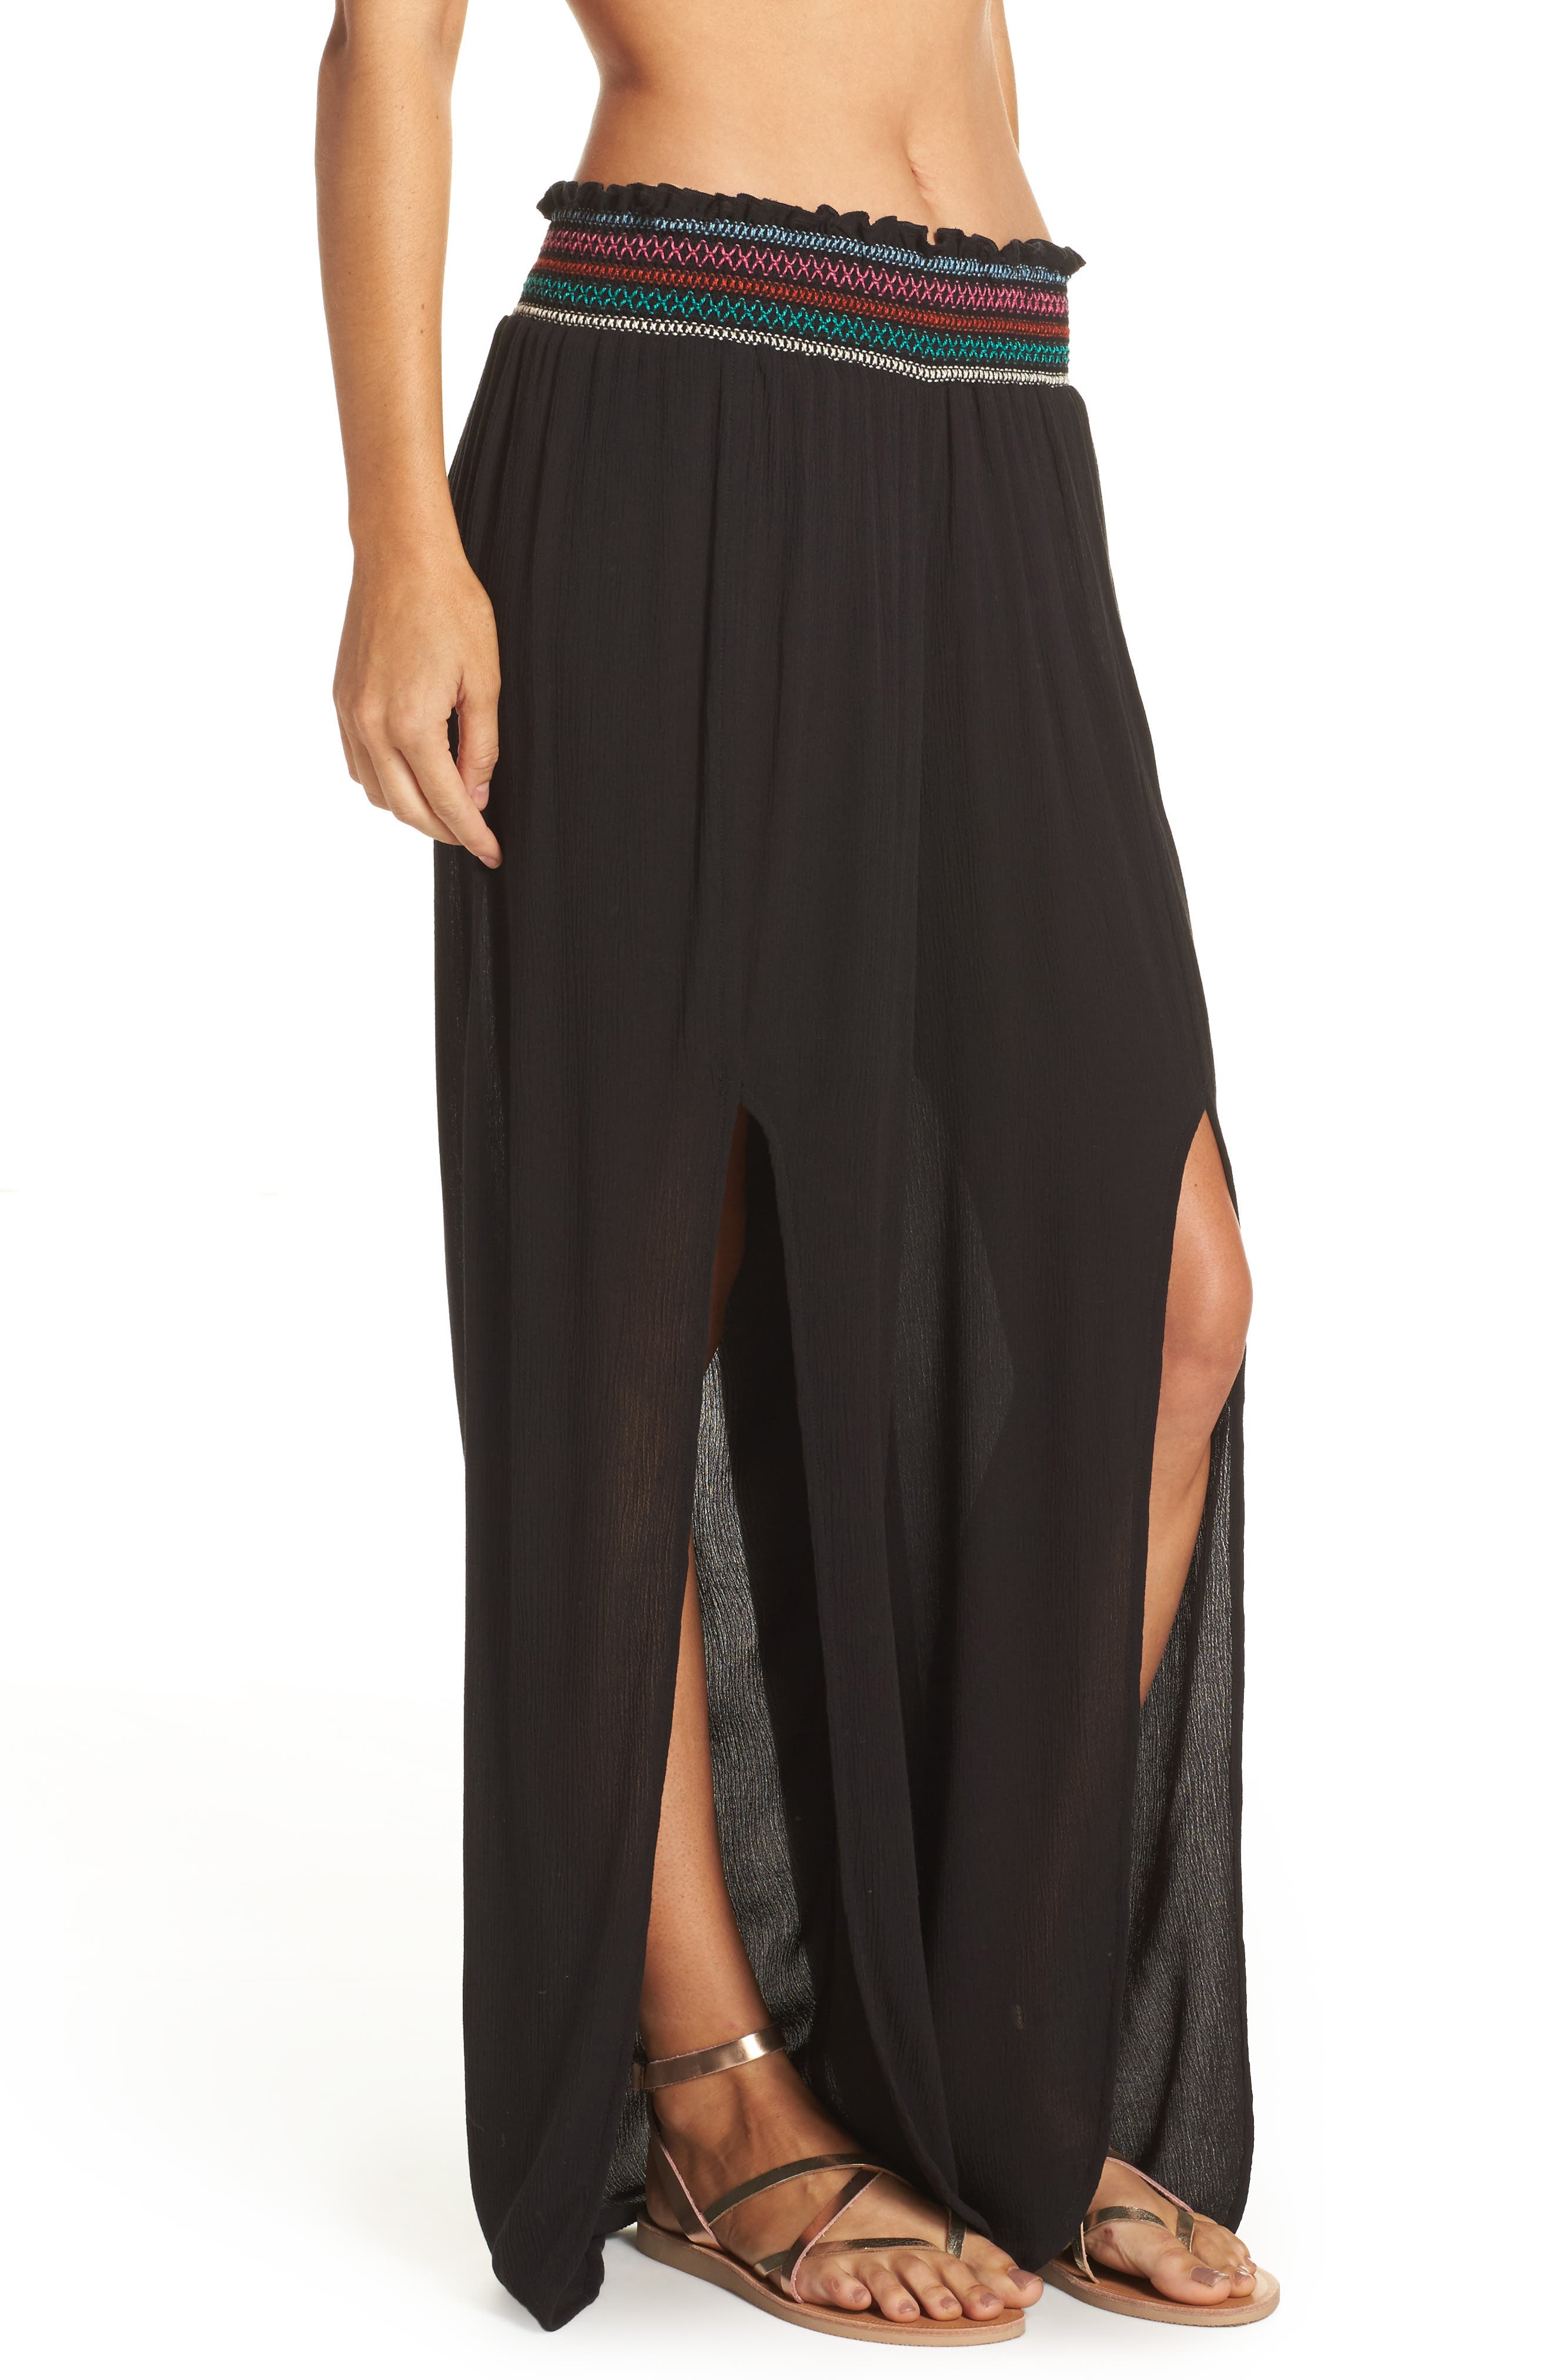 Crystal Cove Cover-Up Pants,                             Alternate thumbnail 3, color,                             001